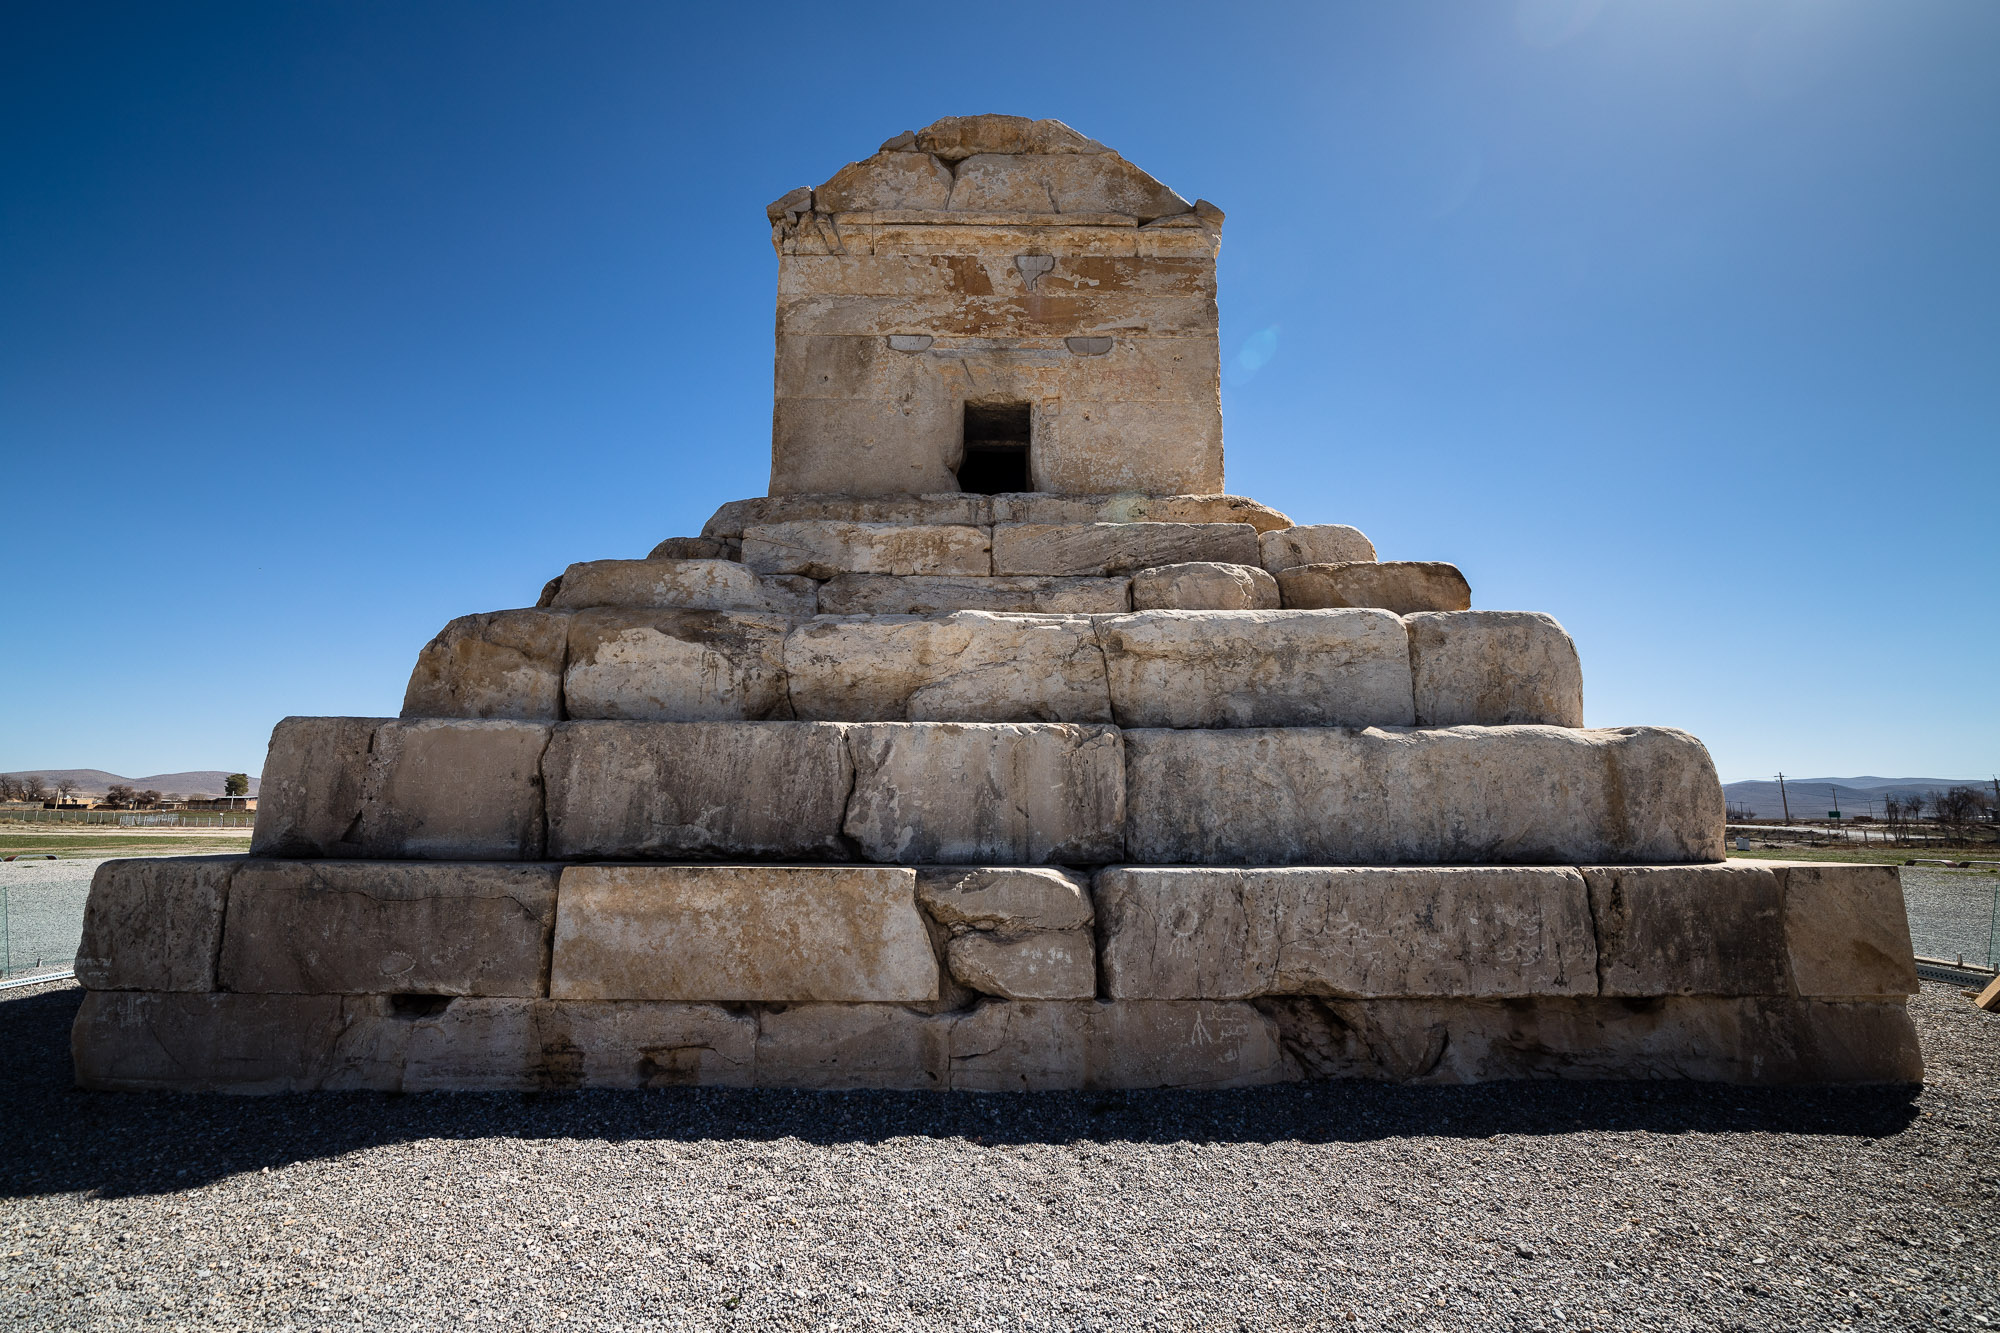 front of the Tomb of Cyrus